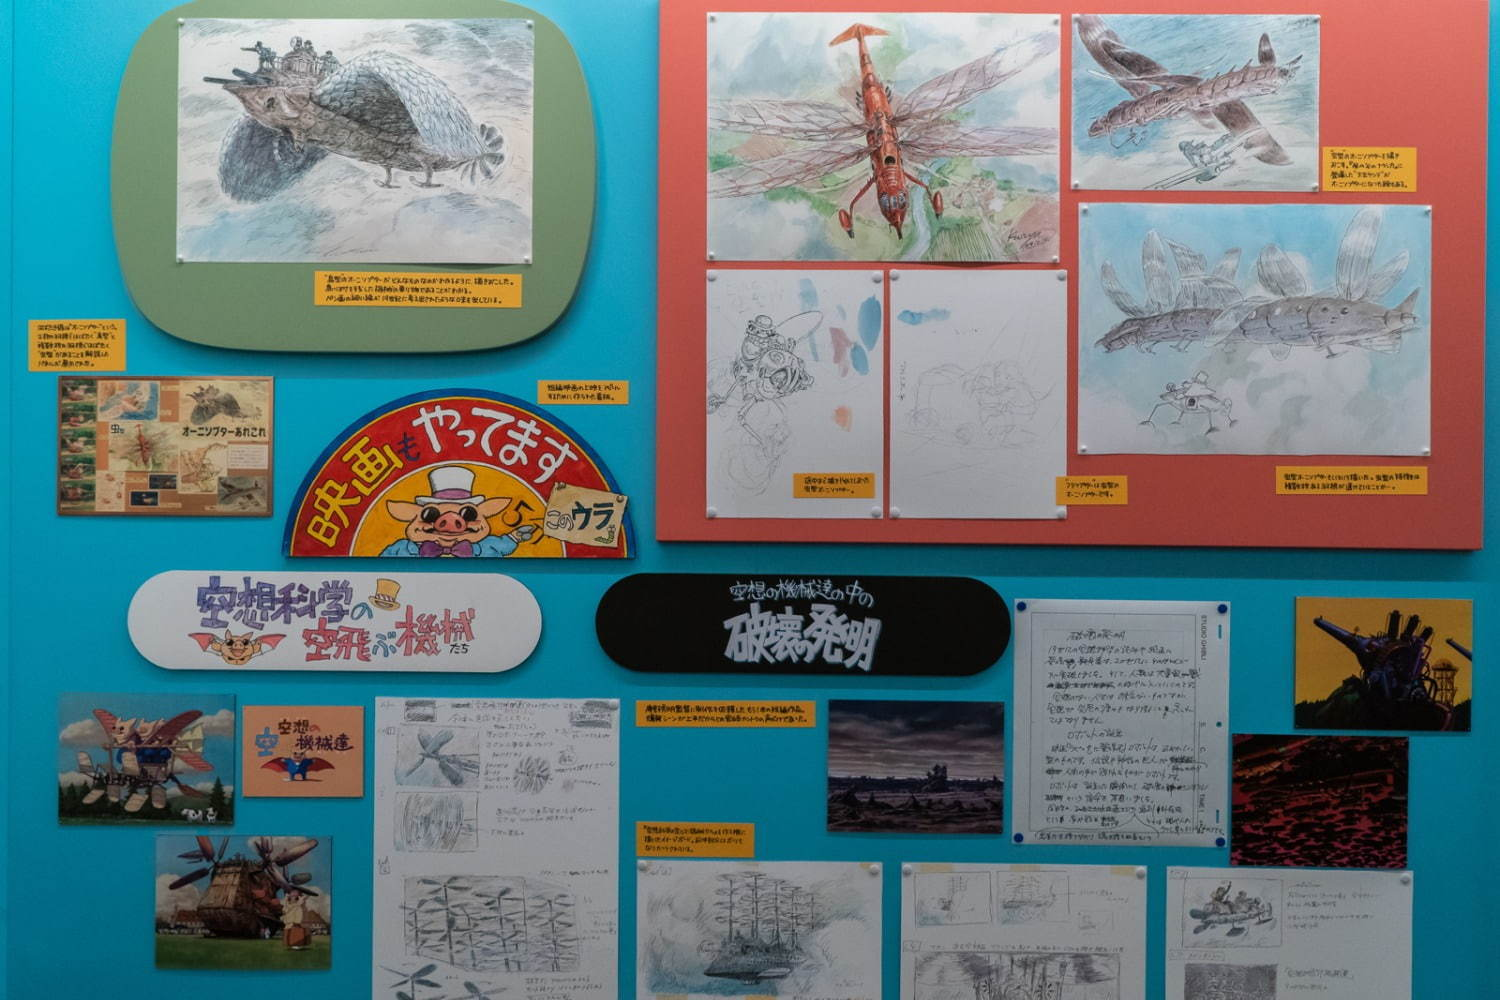 Ghibli Museum Exhibition: Sketch, Flash, Spark! -From the Ghibli Forest Sketchbook